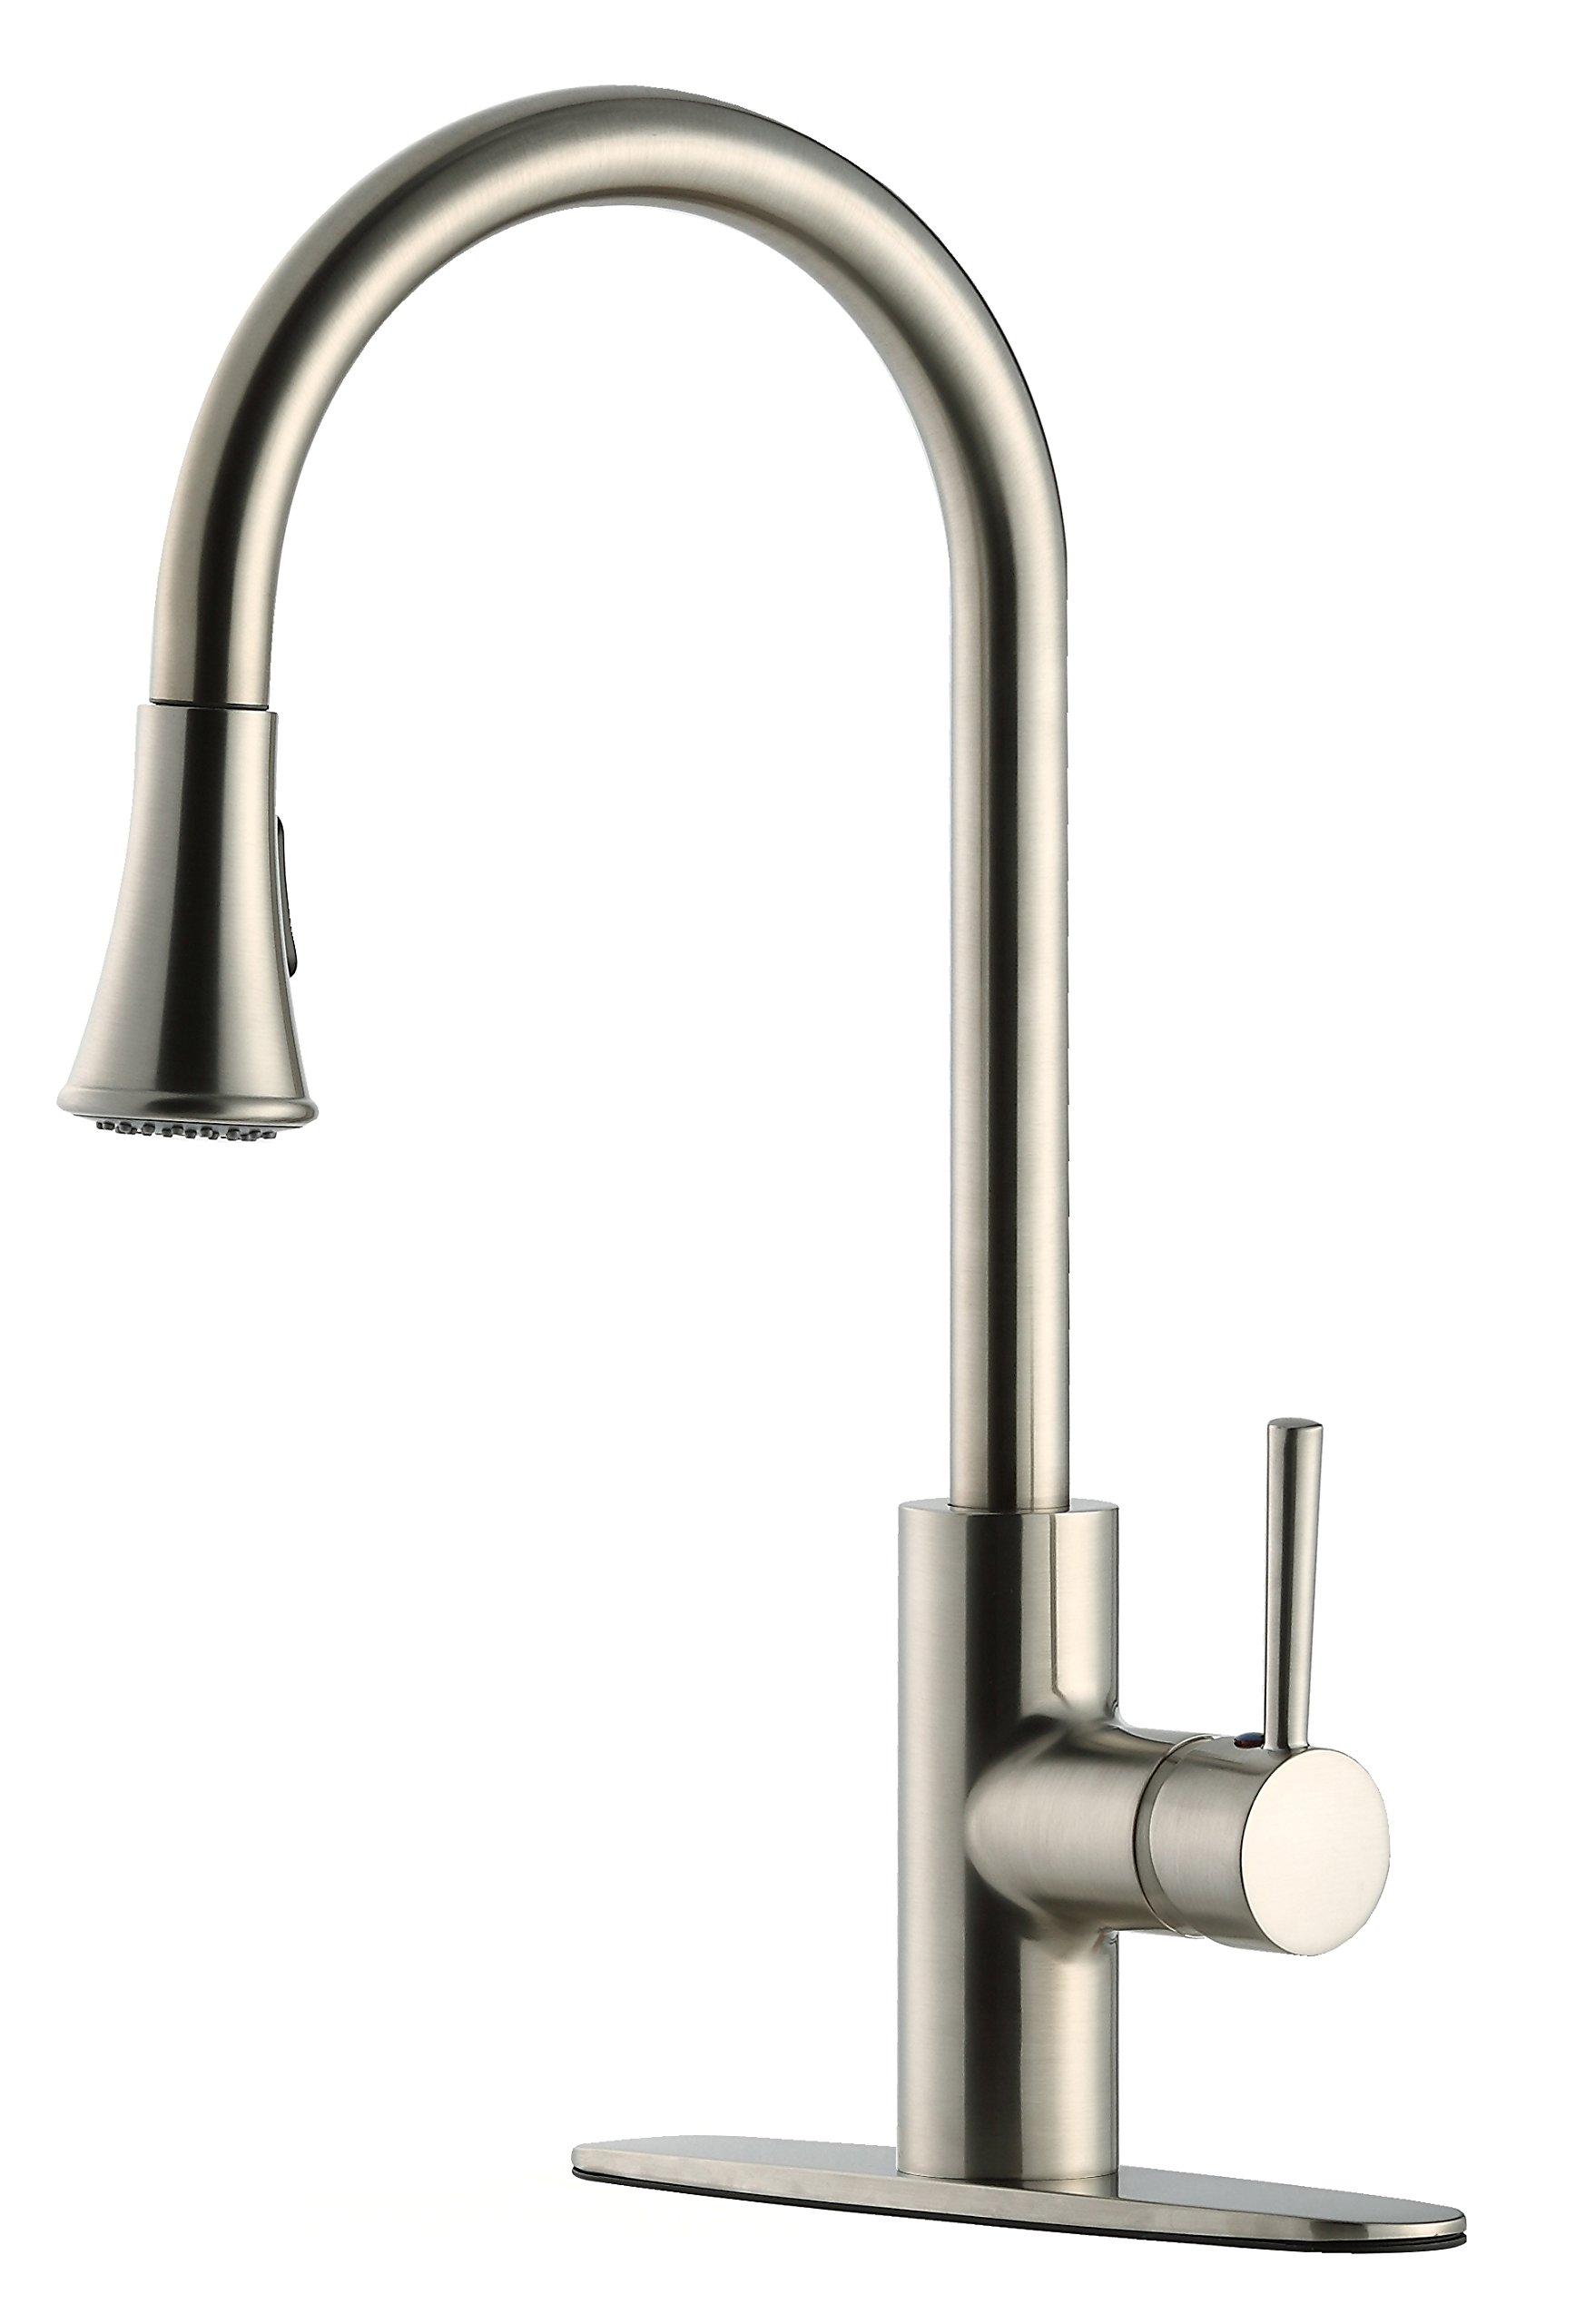 Derengge FK-258D-BN-CON 1 or 3-holes Brass Contemporary Stainless Steel Single Handle Pull-Down Kitchen Faucet,cUPC NSF AB1953 Lead Free Brushed Nickel